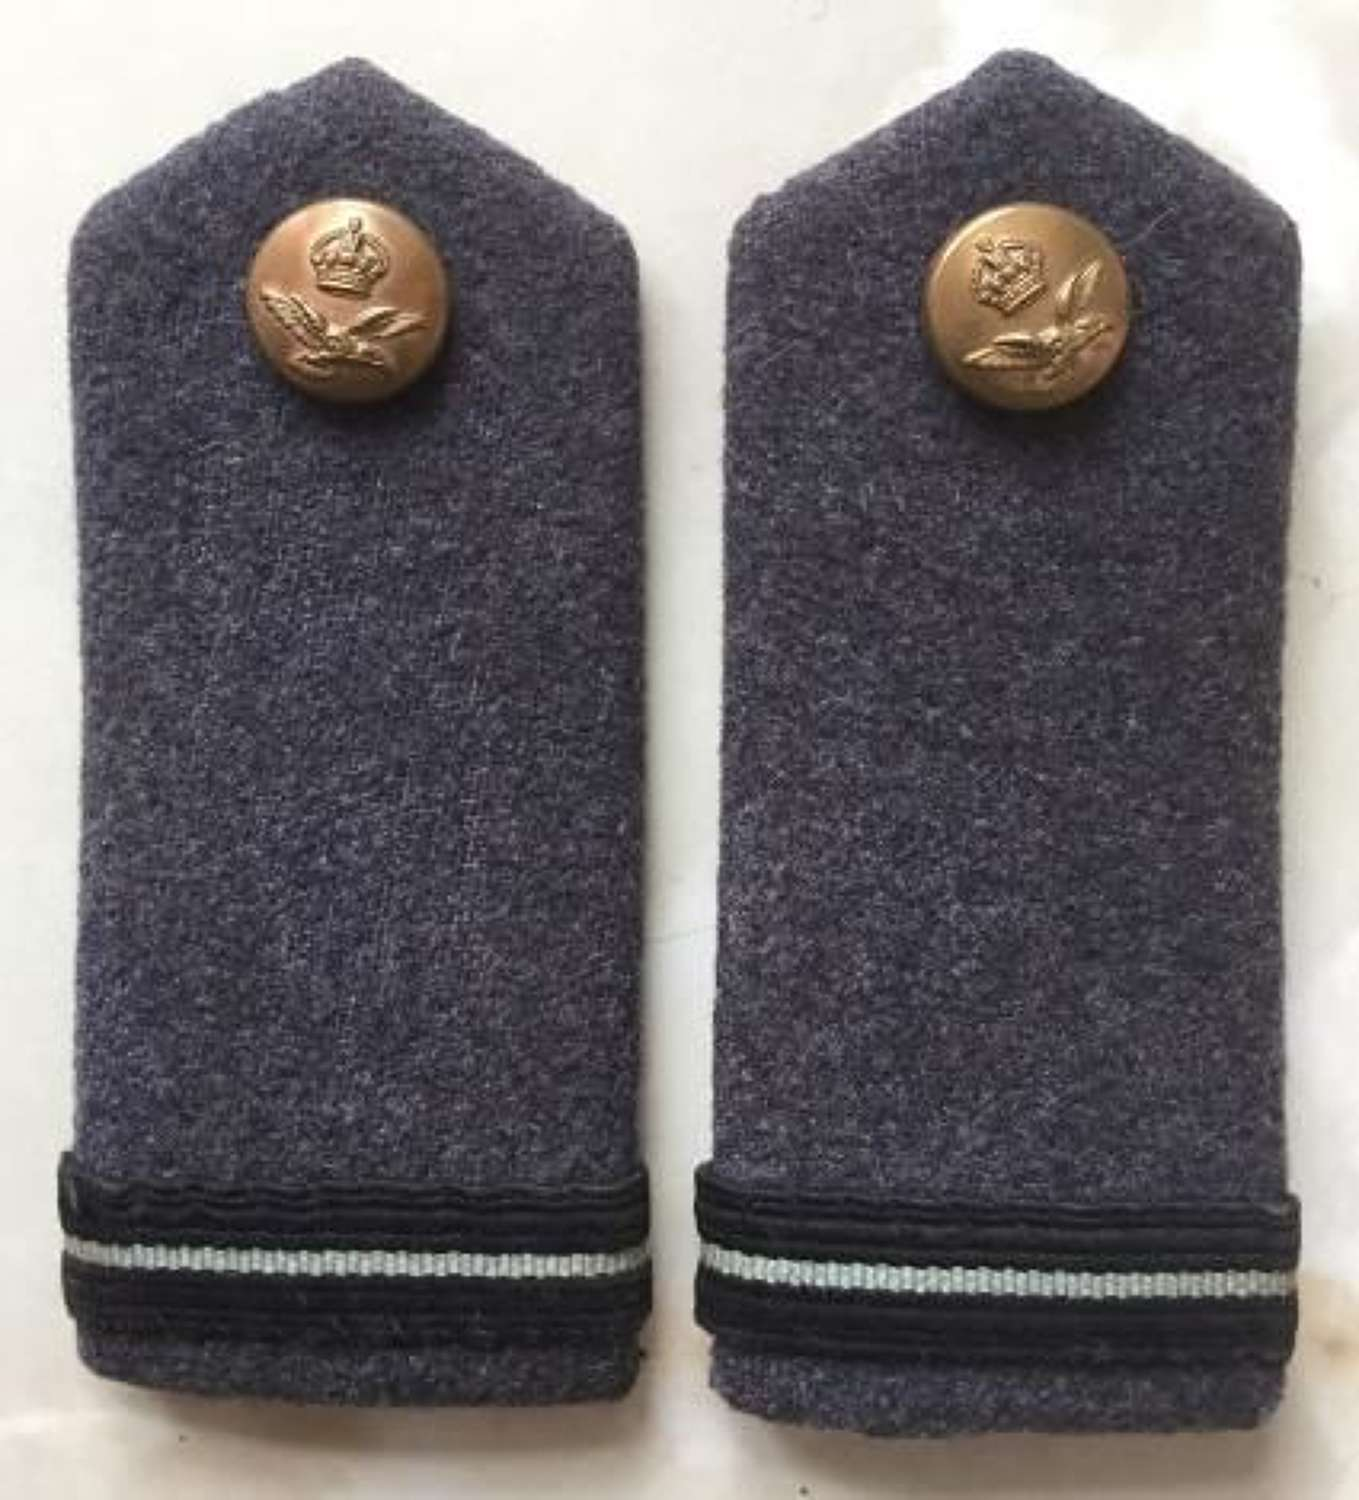 WW2 Period RAF Greatcoat Rank Boards - Flying Officer